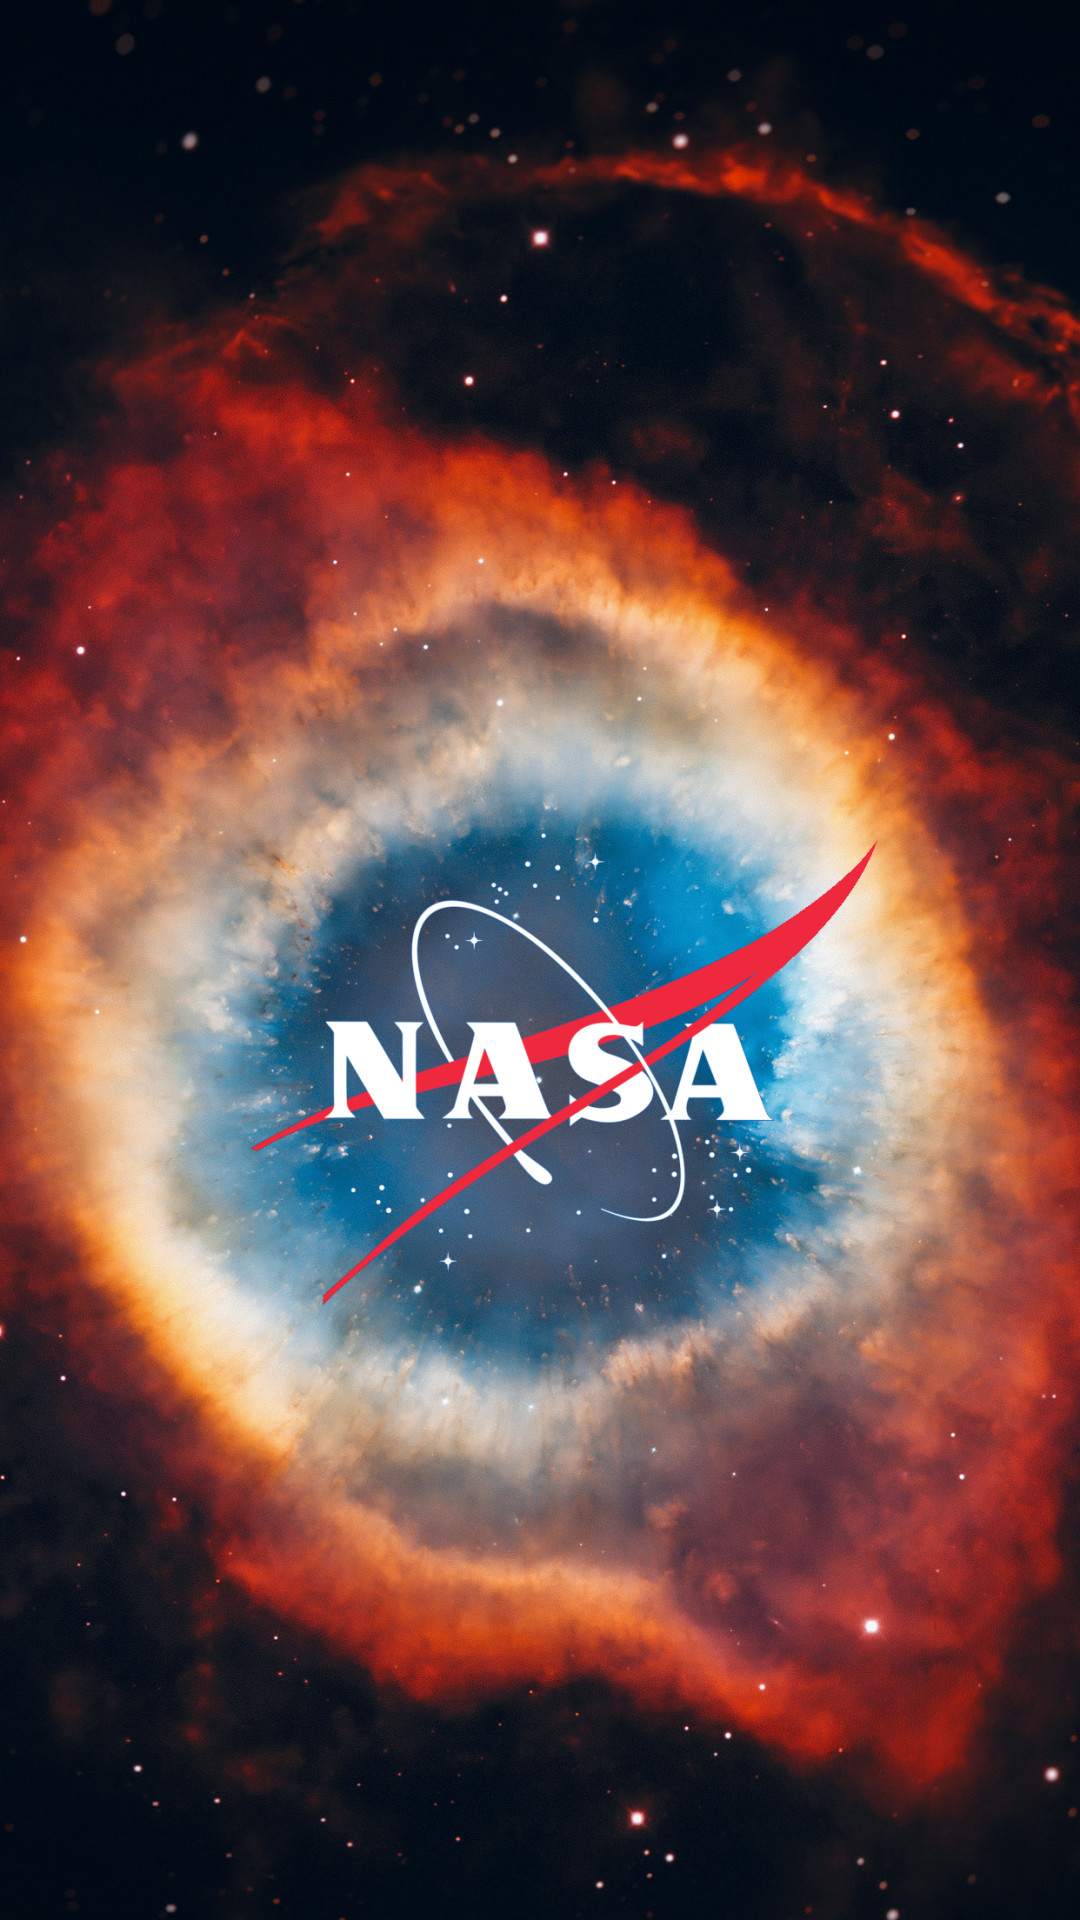 Nasa logo wallpapers 70 background pictures - Nasa space wallpaper 1920x1080 ...